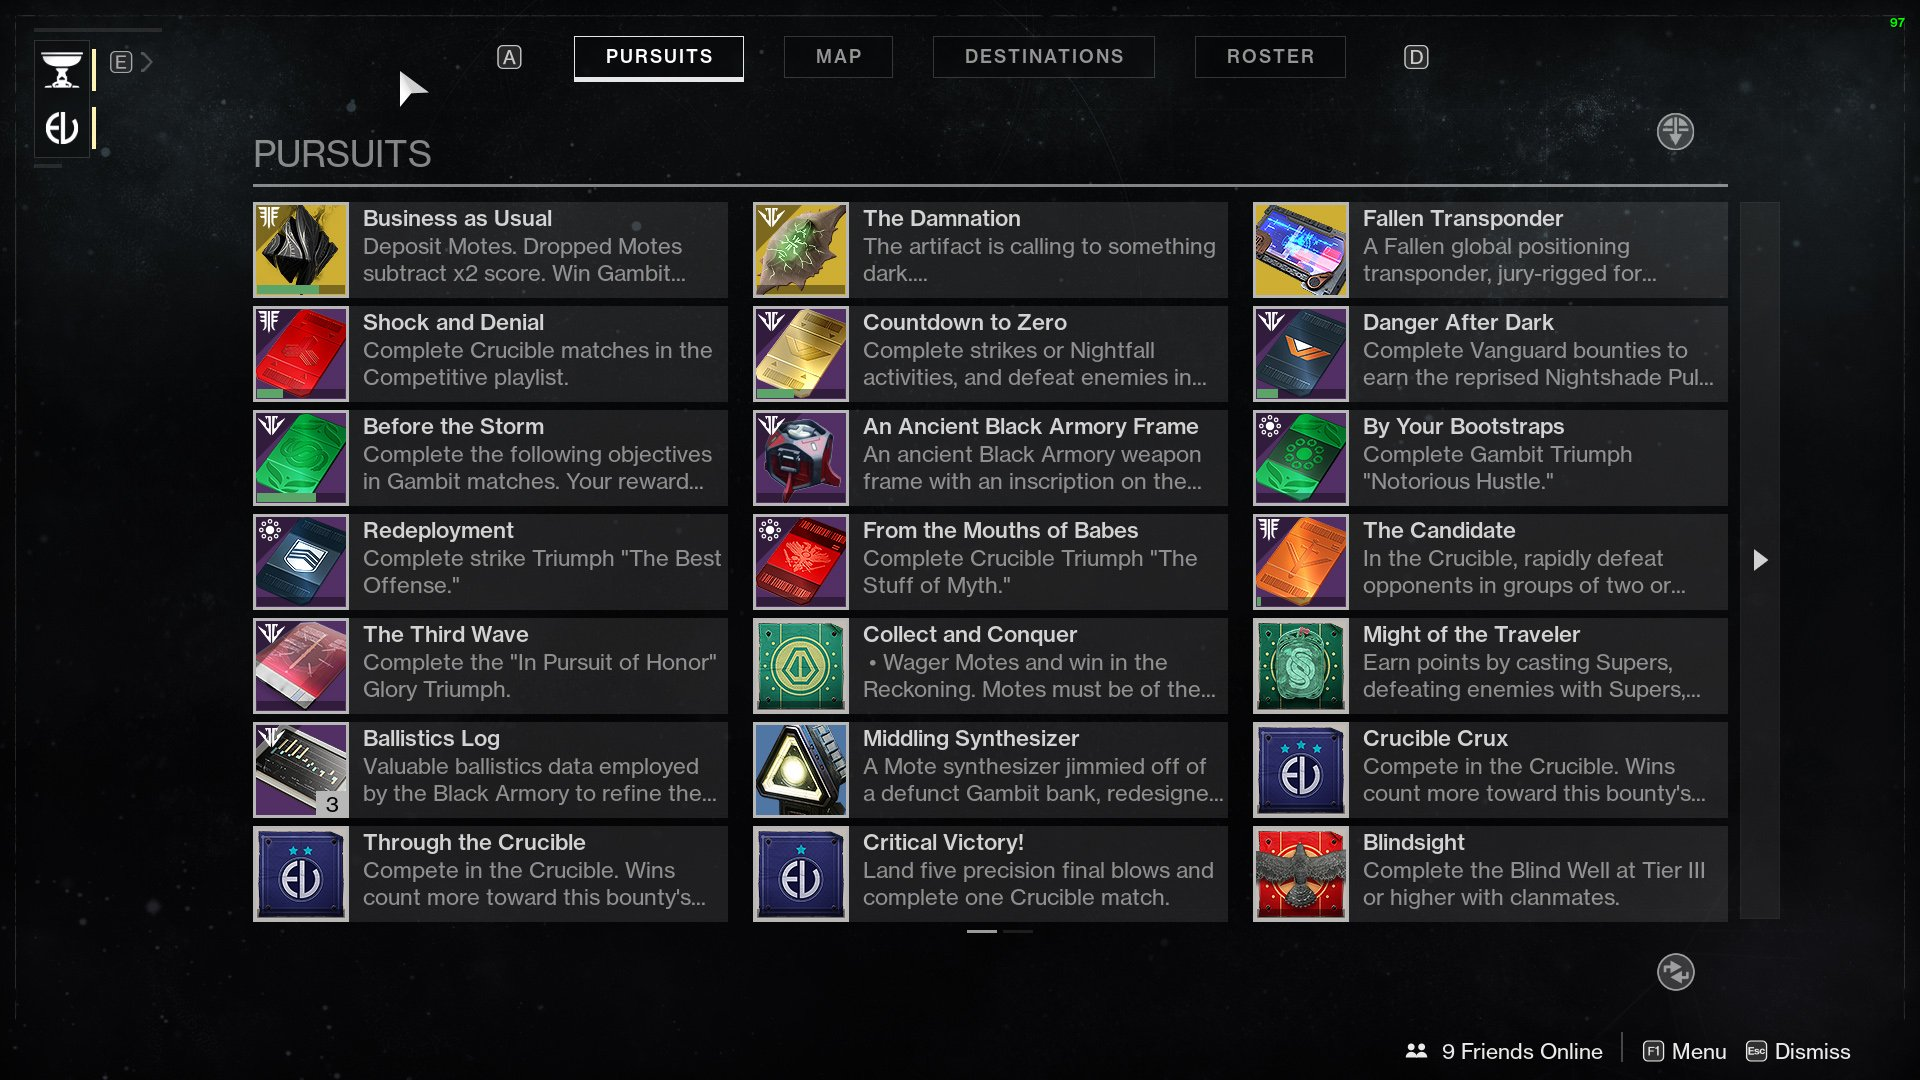 Destiny 2 Pursuits and Bounties